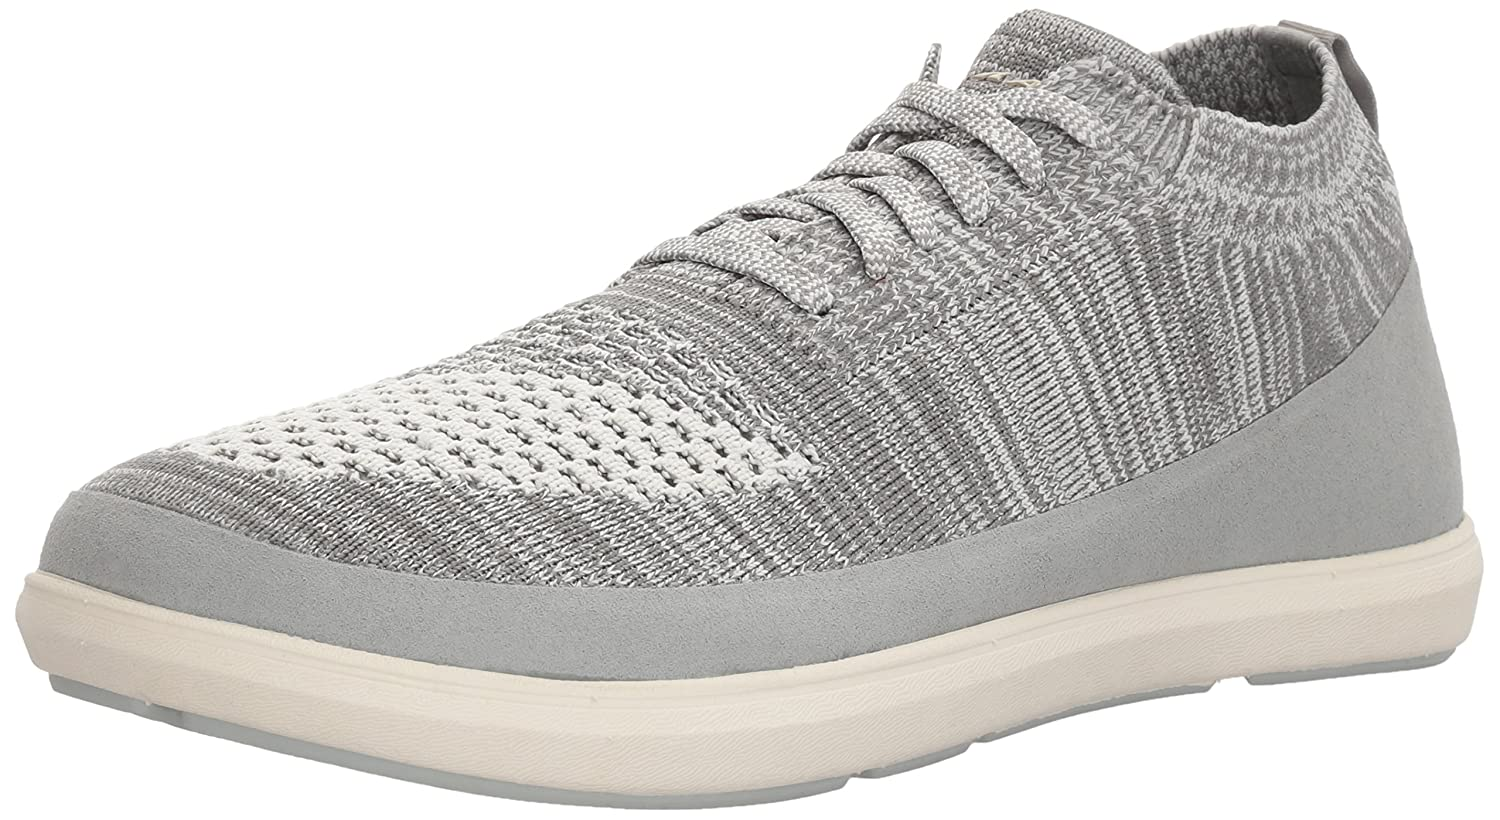 Altra Women's Vali Sneaker B071W9SDY2 6 Regular US|Light Gray